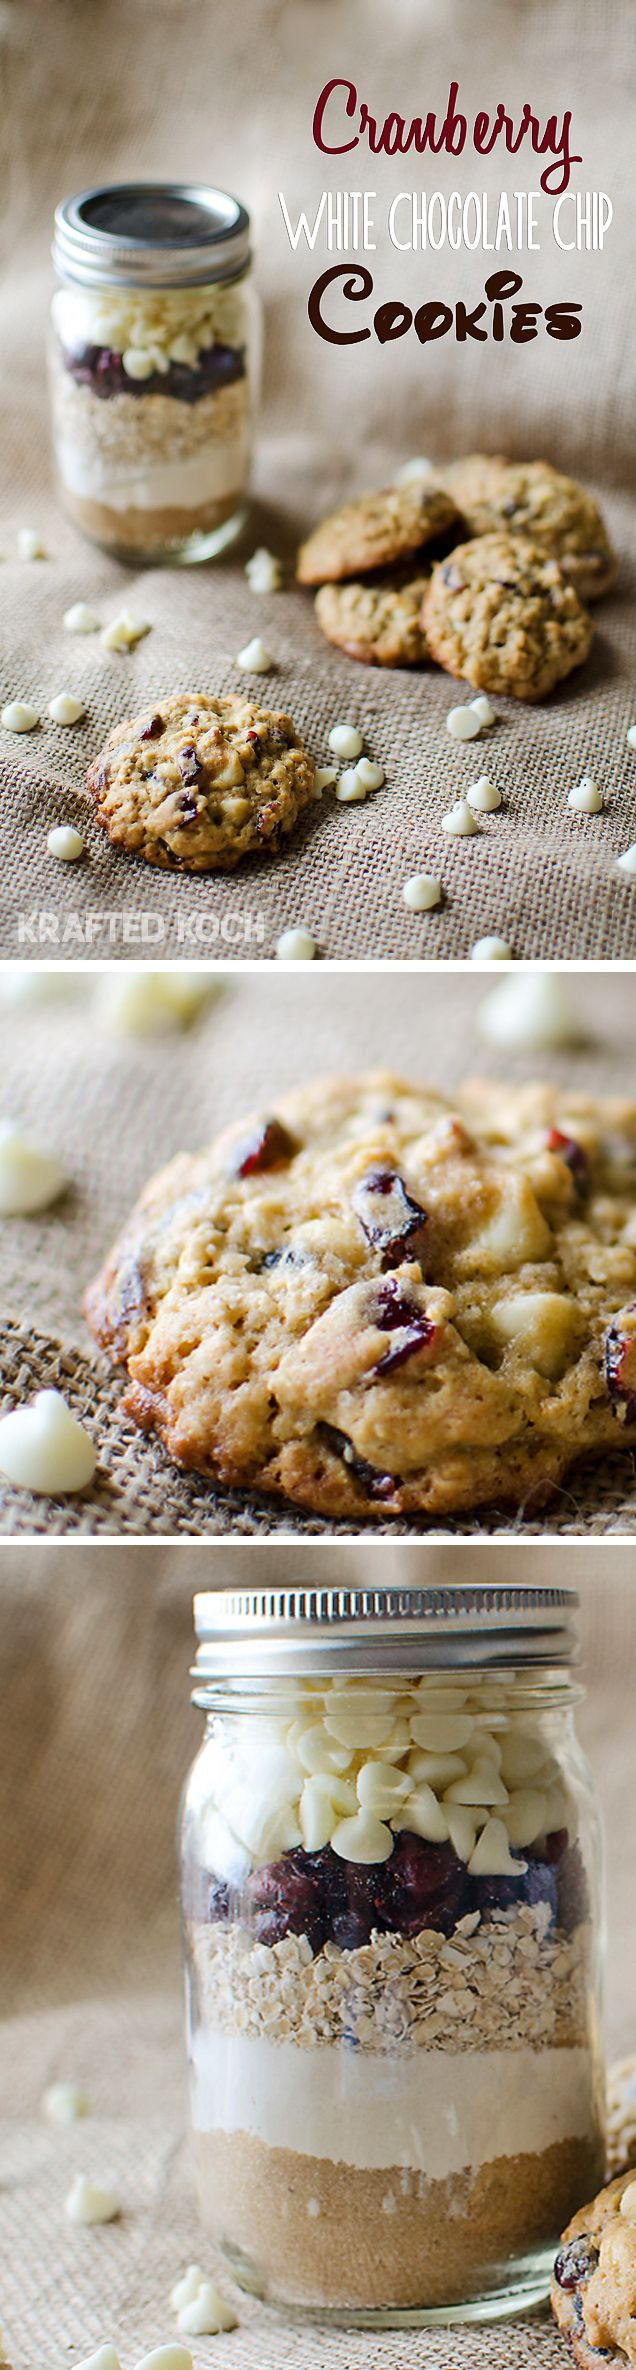 Cranberry White Chocolate Cookies in a Pint Jar.